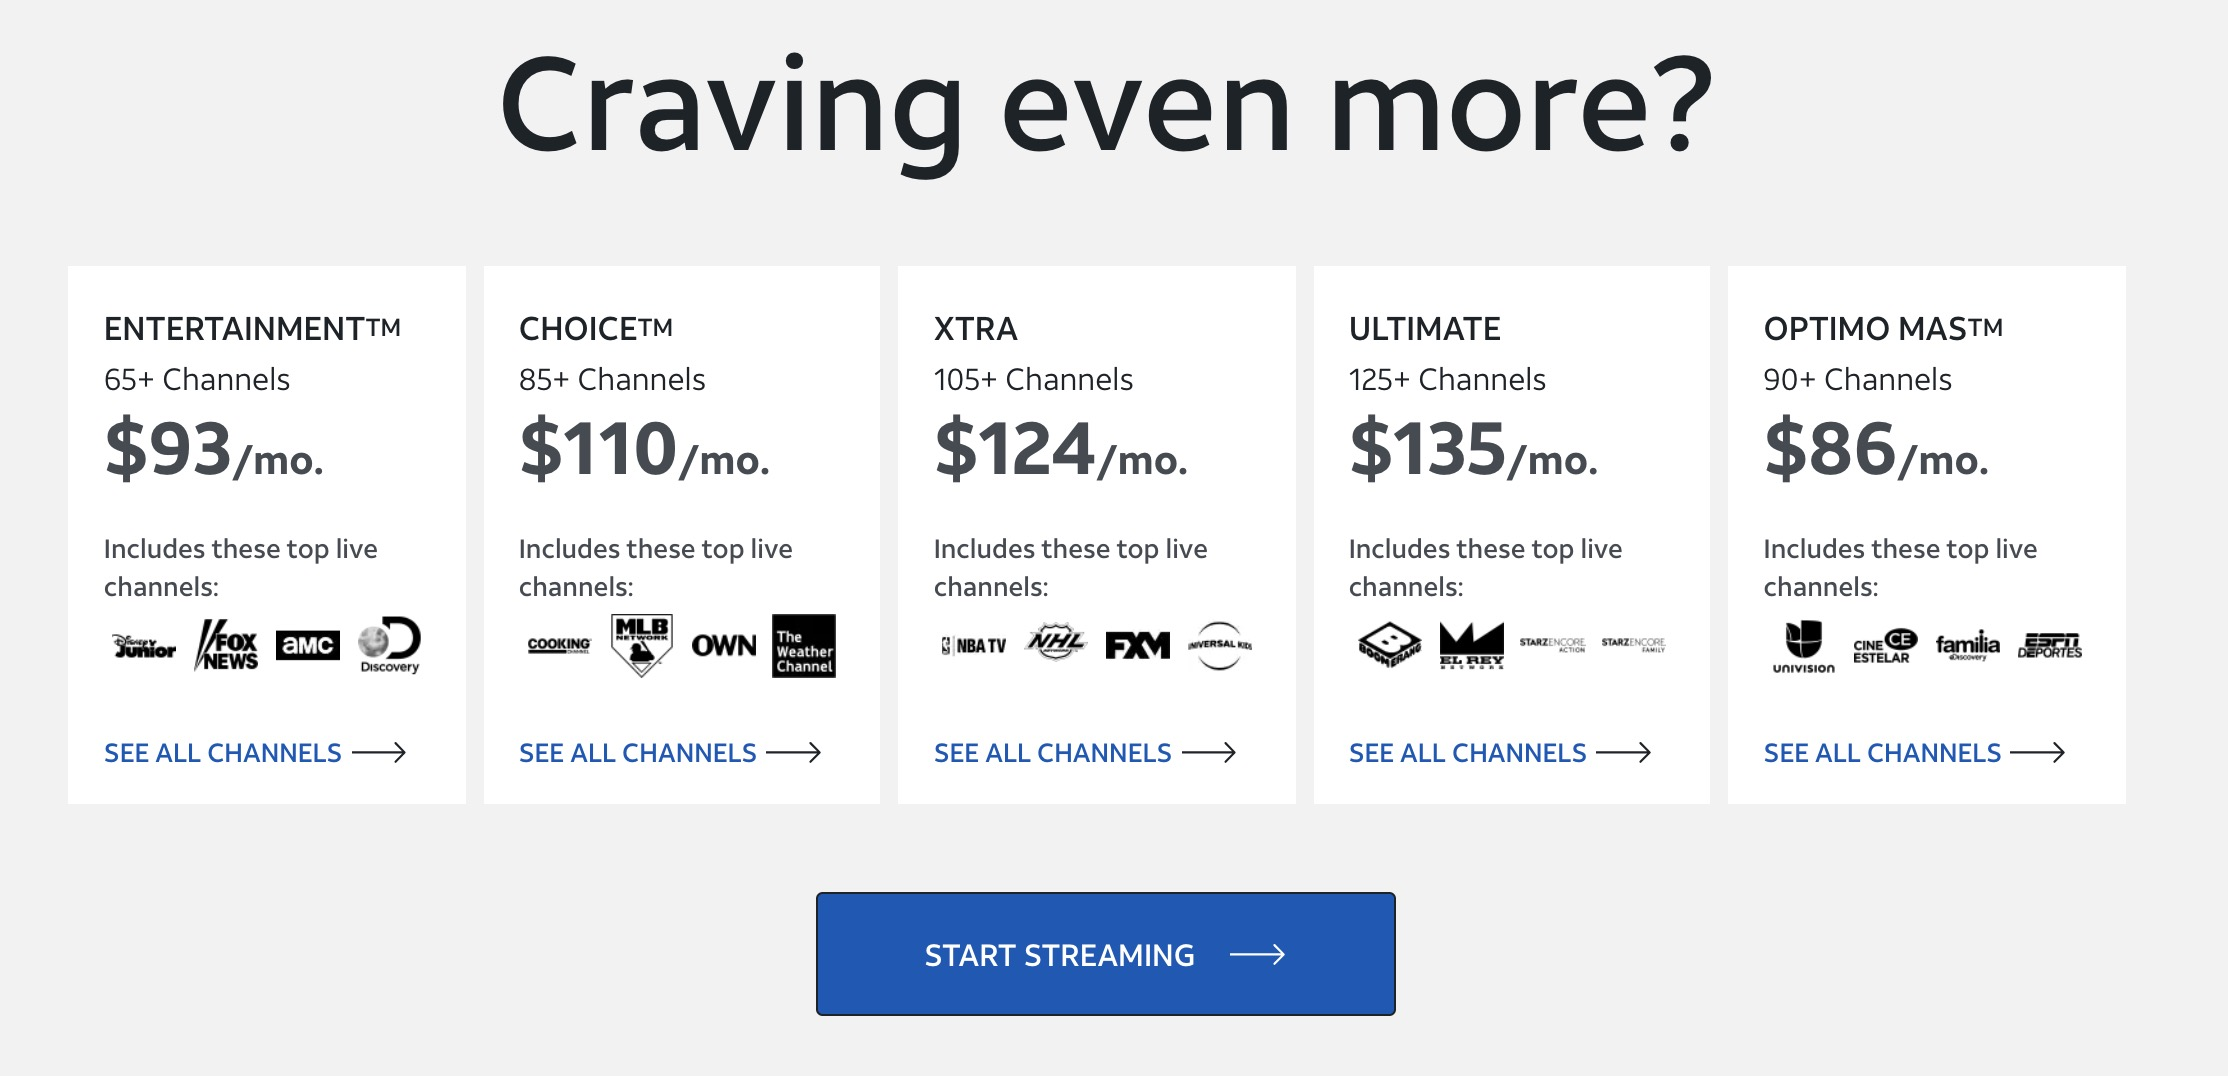 AT&T brings cable TV prices to online streaming with $135